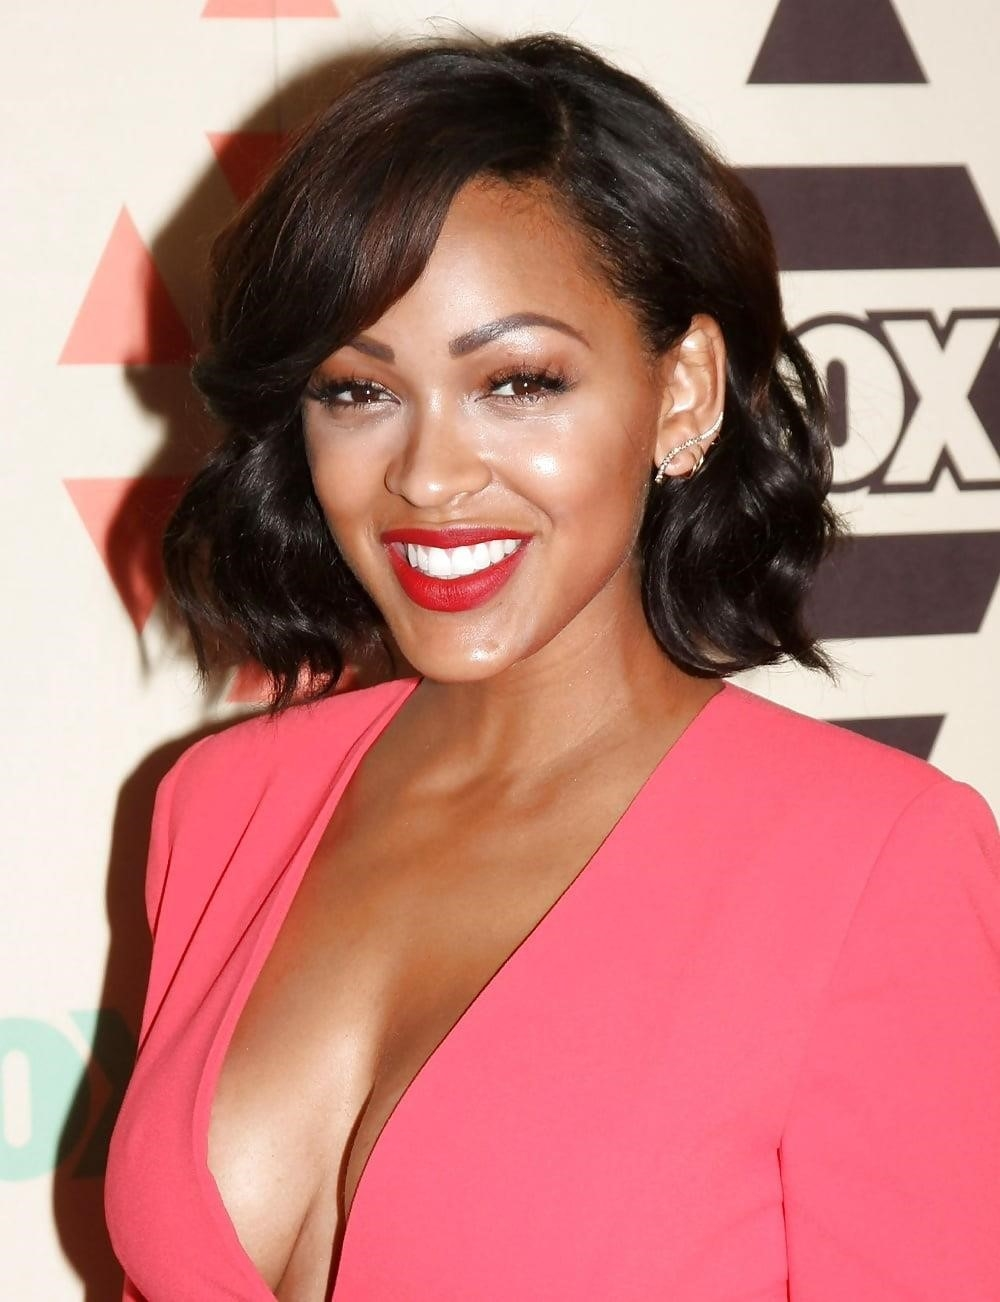 Meagan good nude pictures-1390